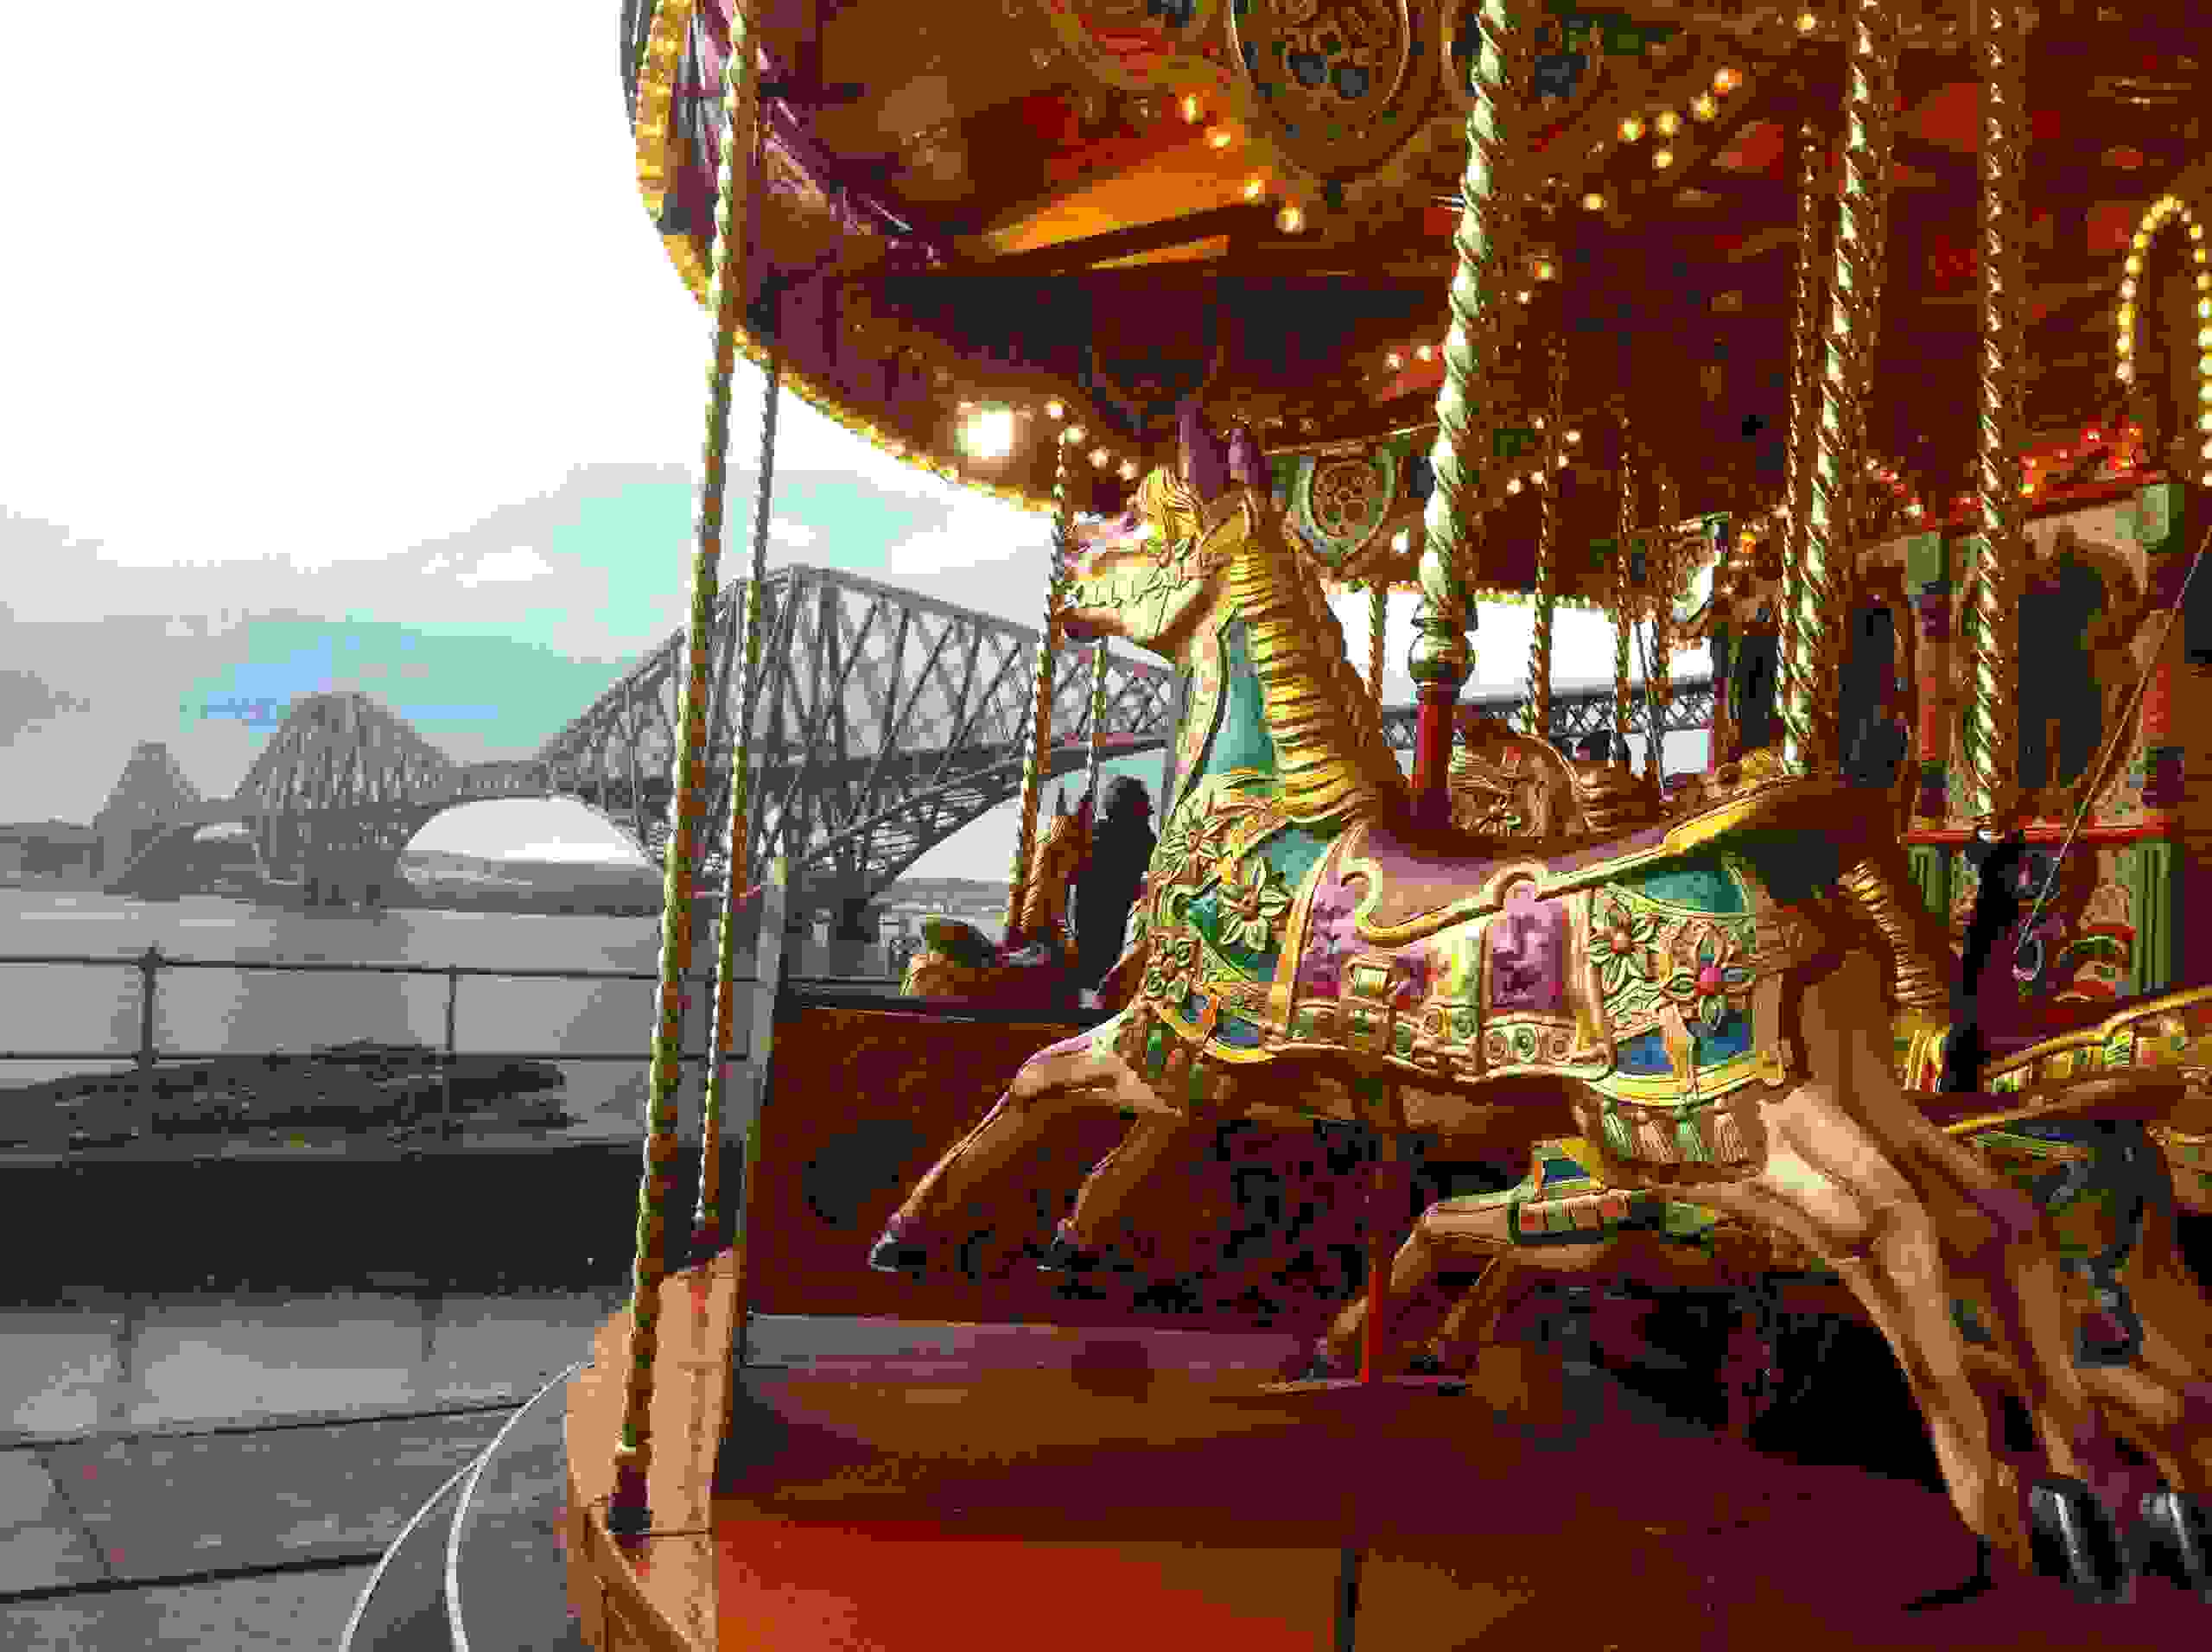 Carousel and funfair ride hires, events, weddings carousel, catering services, funfair